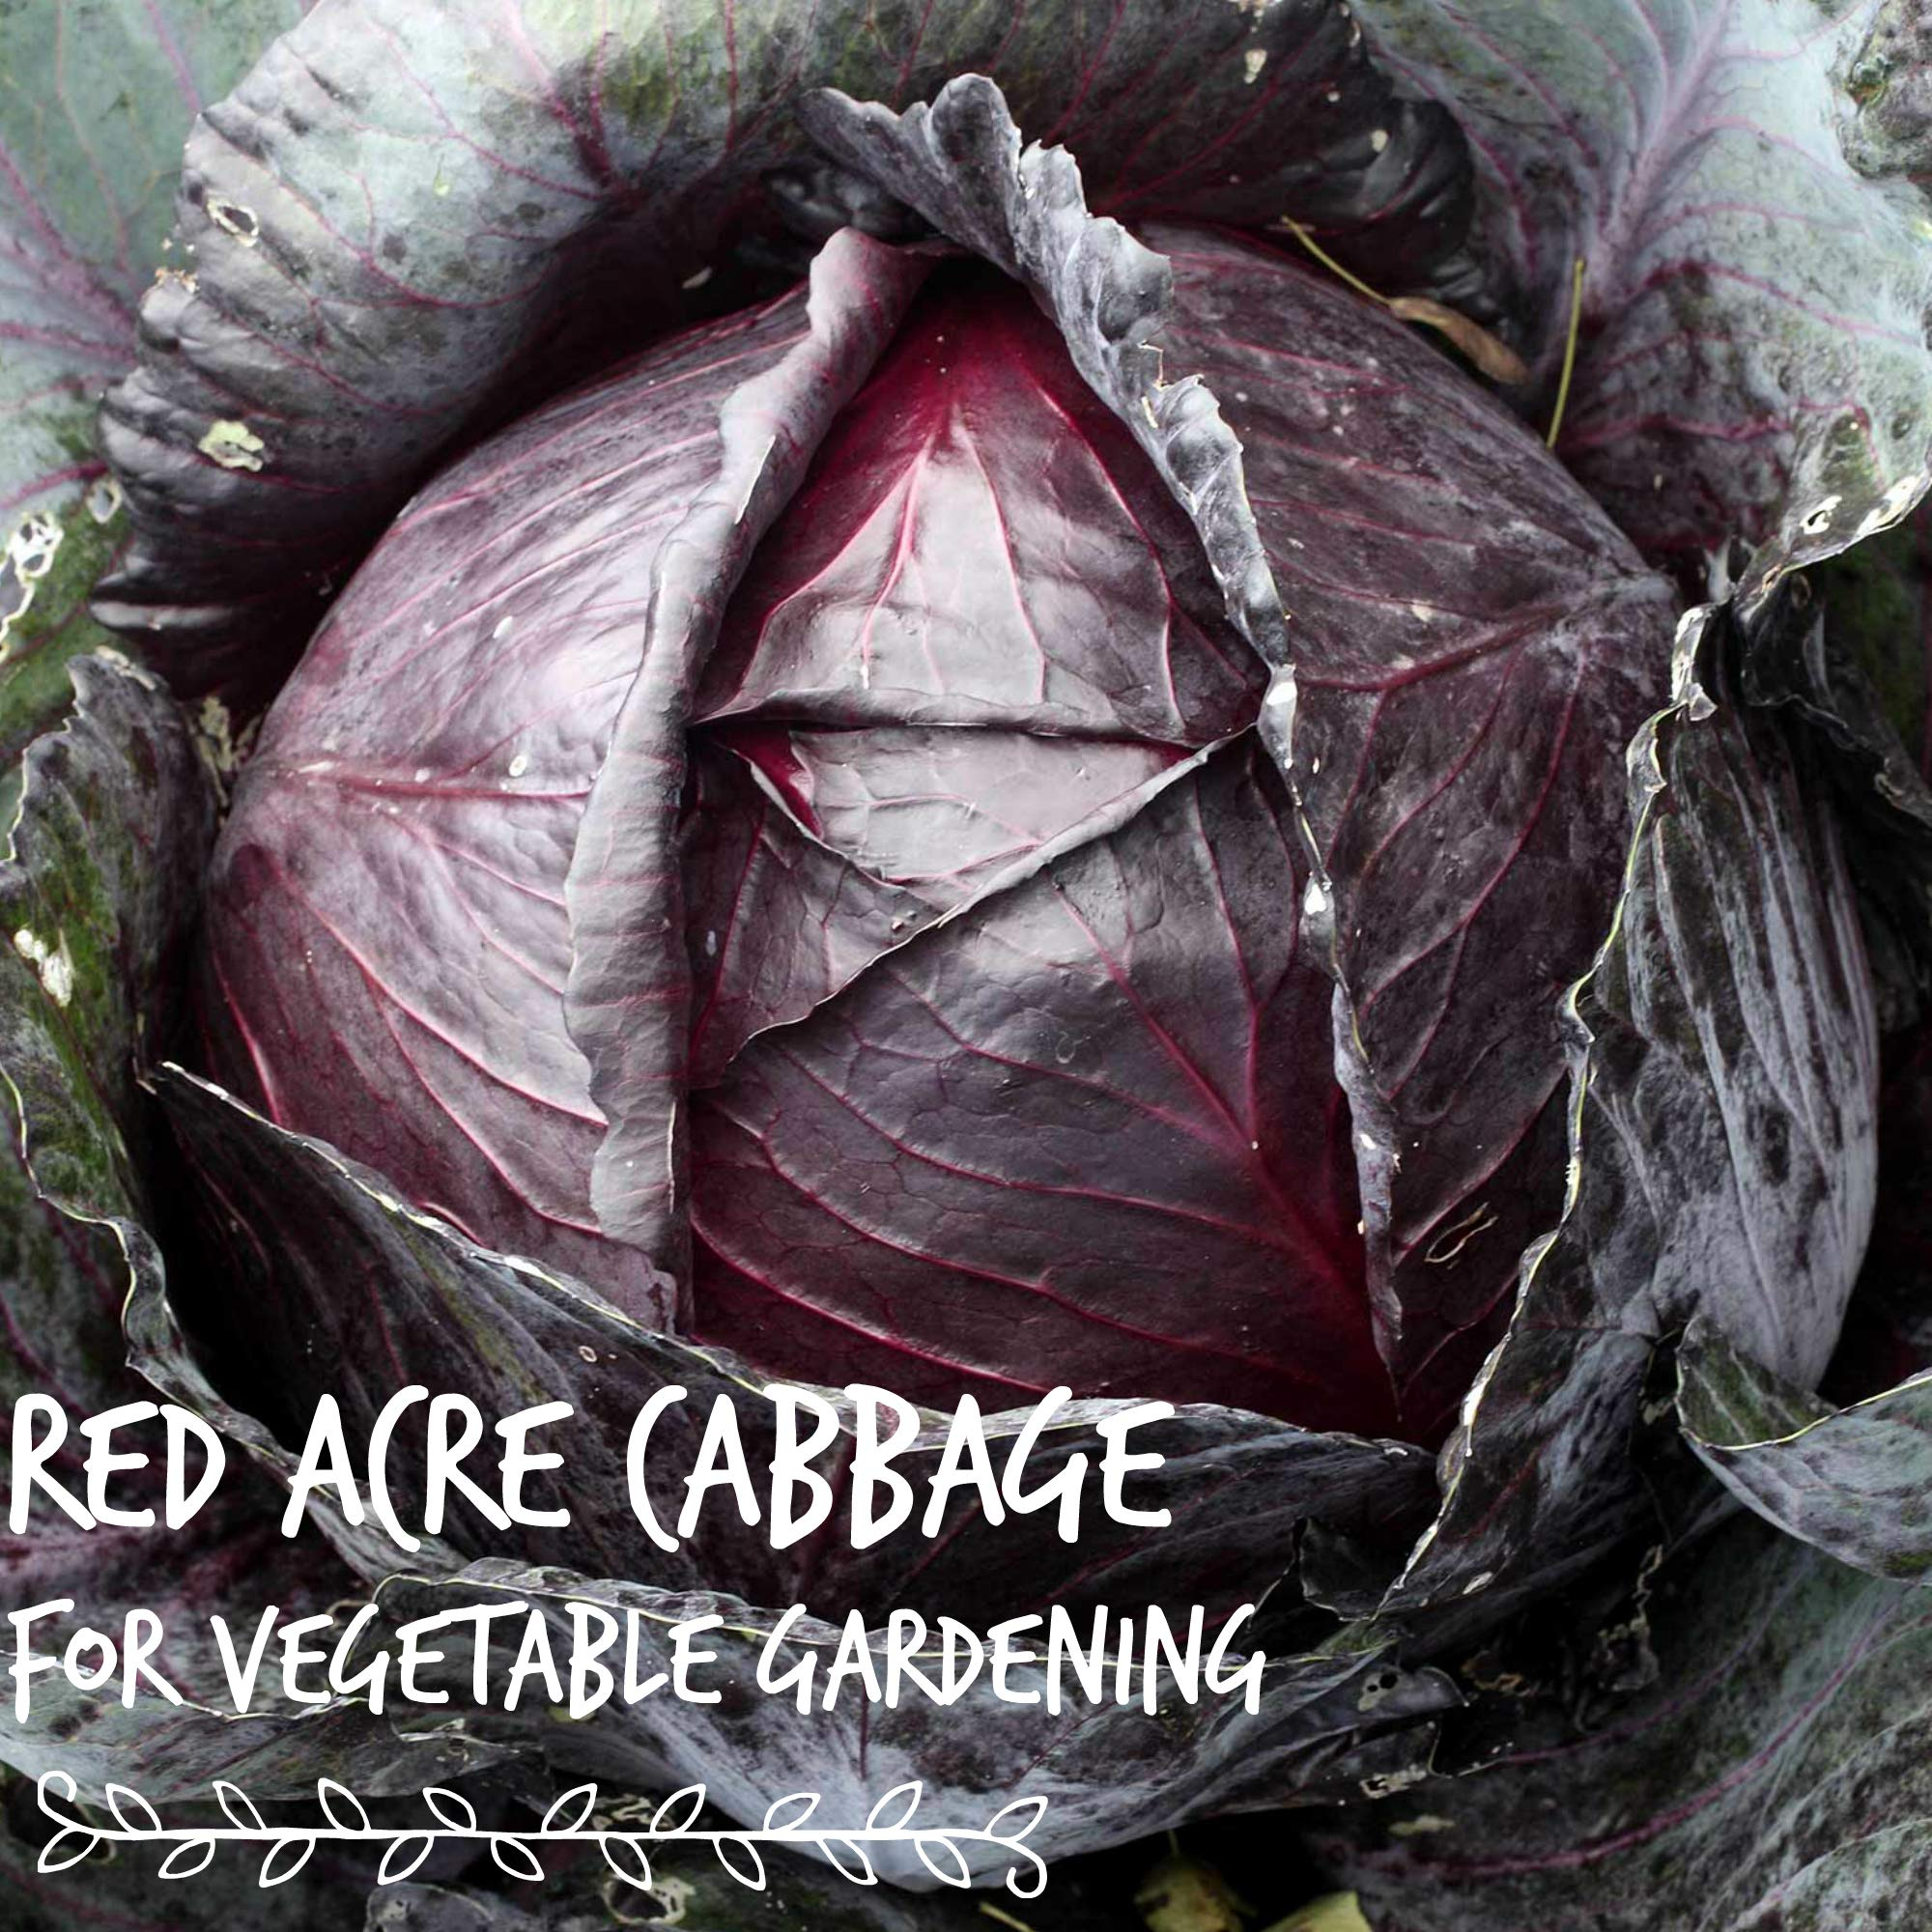 Red Acre Cabbage Seeds: 1 Lb - Non-GMO, Chemical Free Sprouting Seeds for Vegetable Garden & Growing Micro Greens by Mountain Valley Seed Company (Image #2)